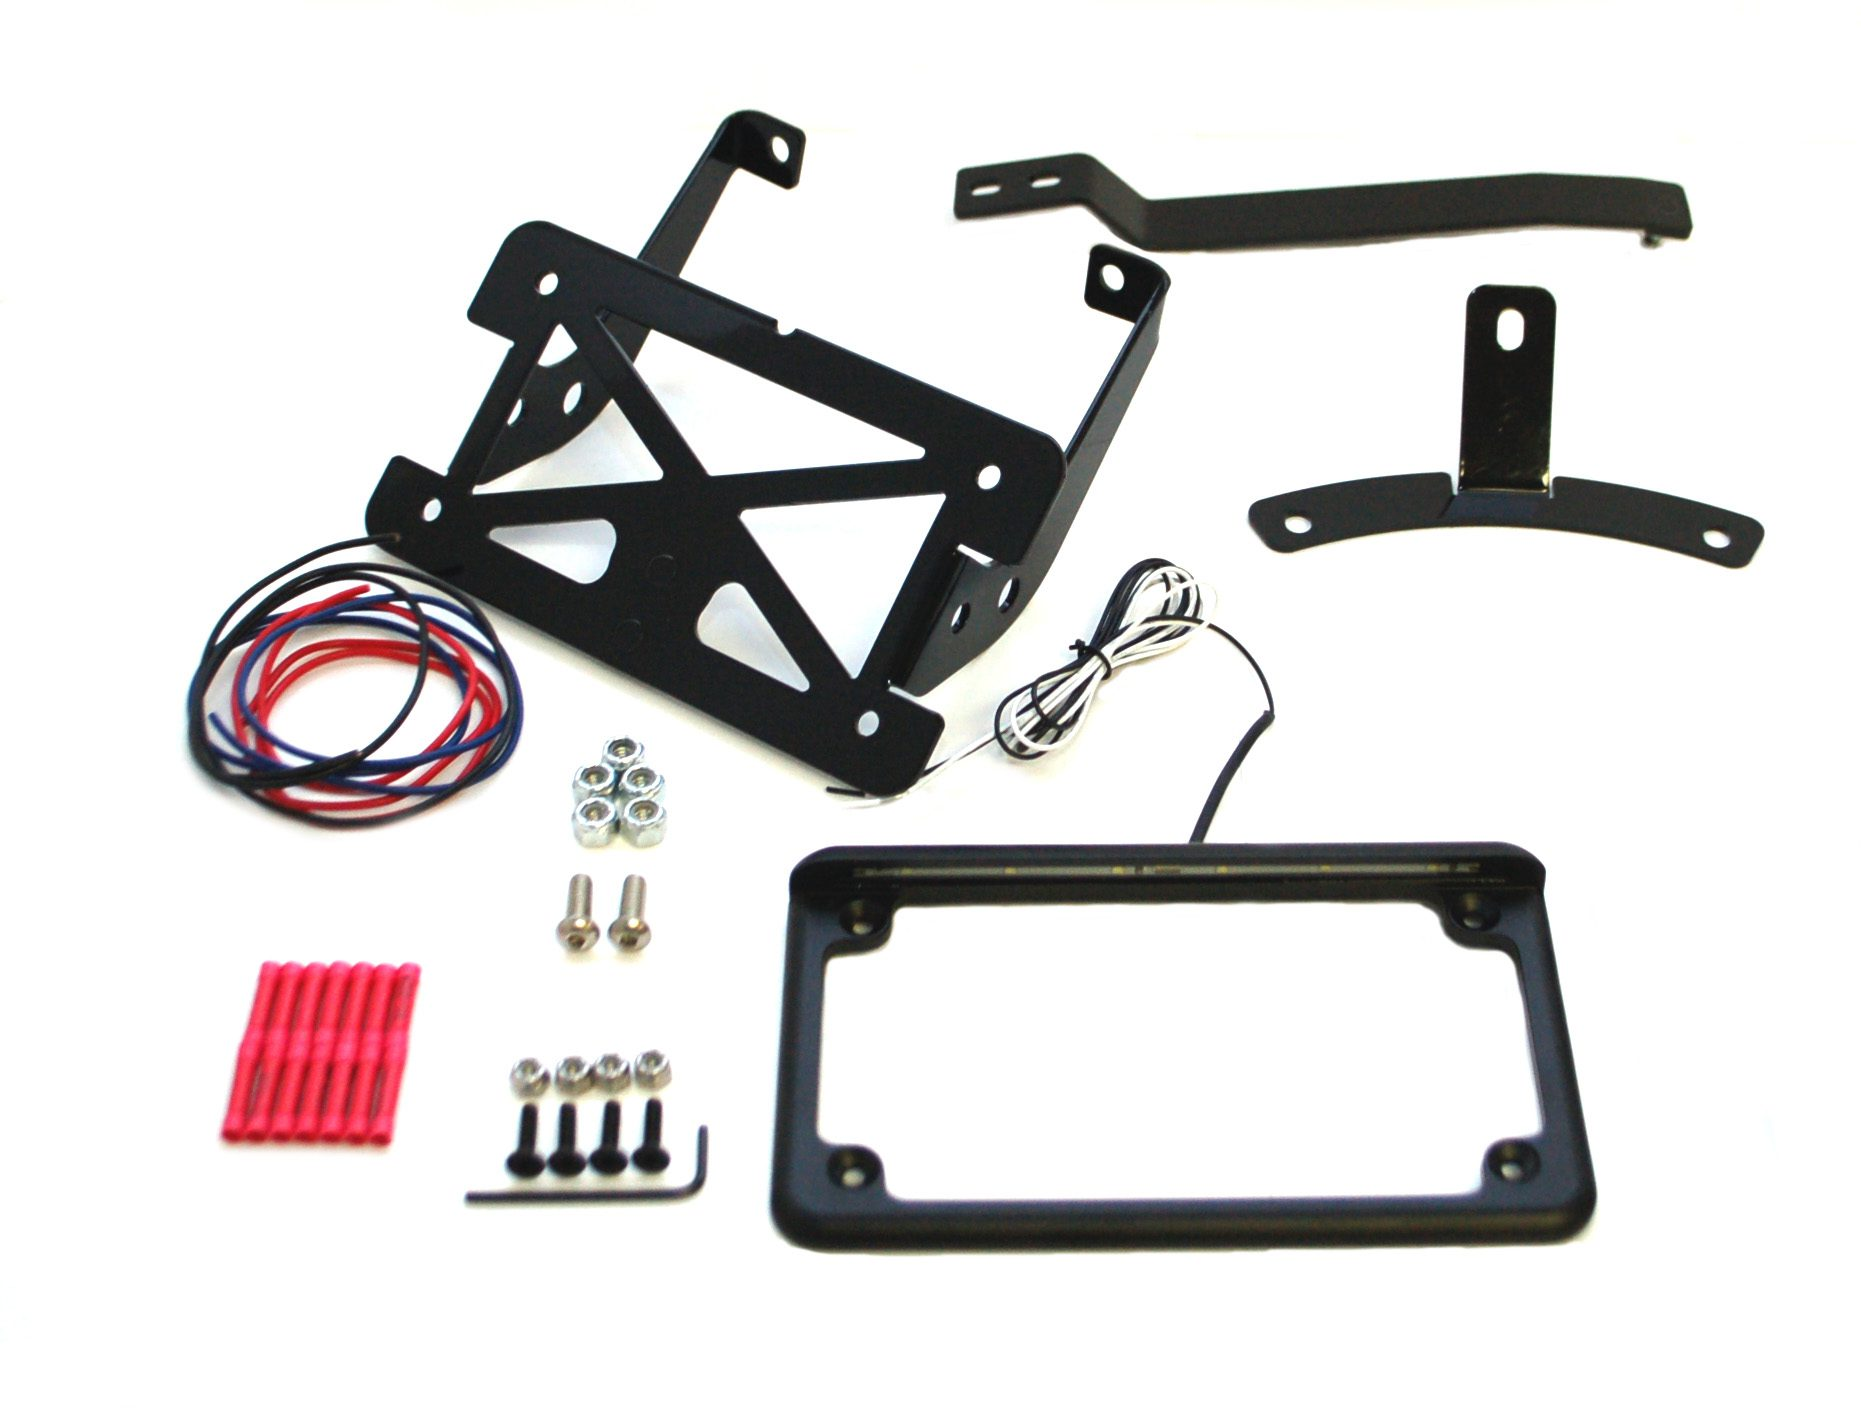 Turn signal relocation kit for 2017 and earlier Slim